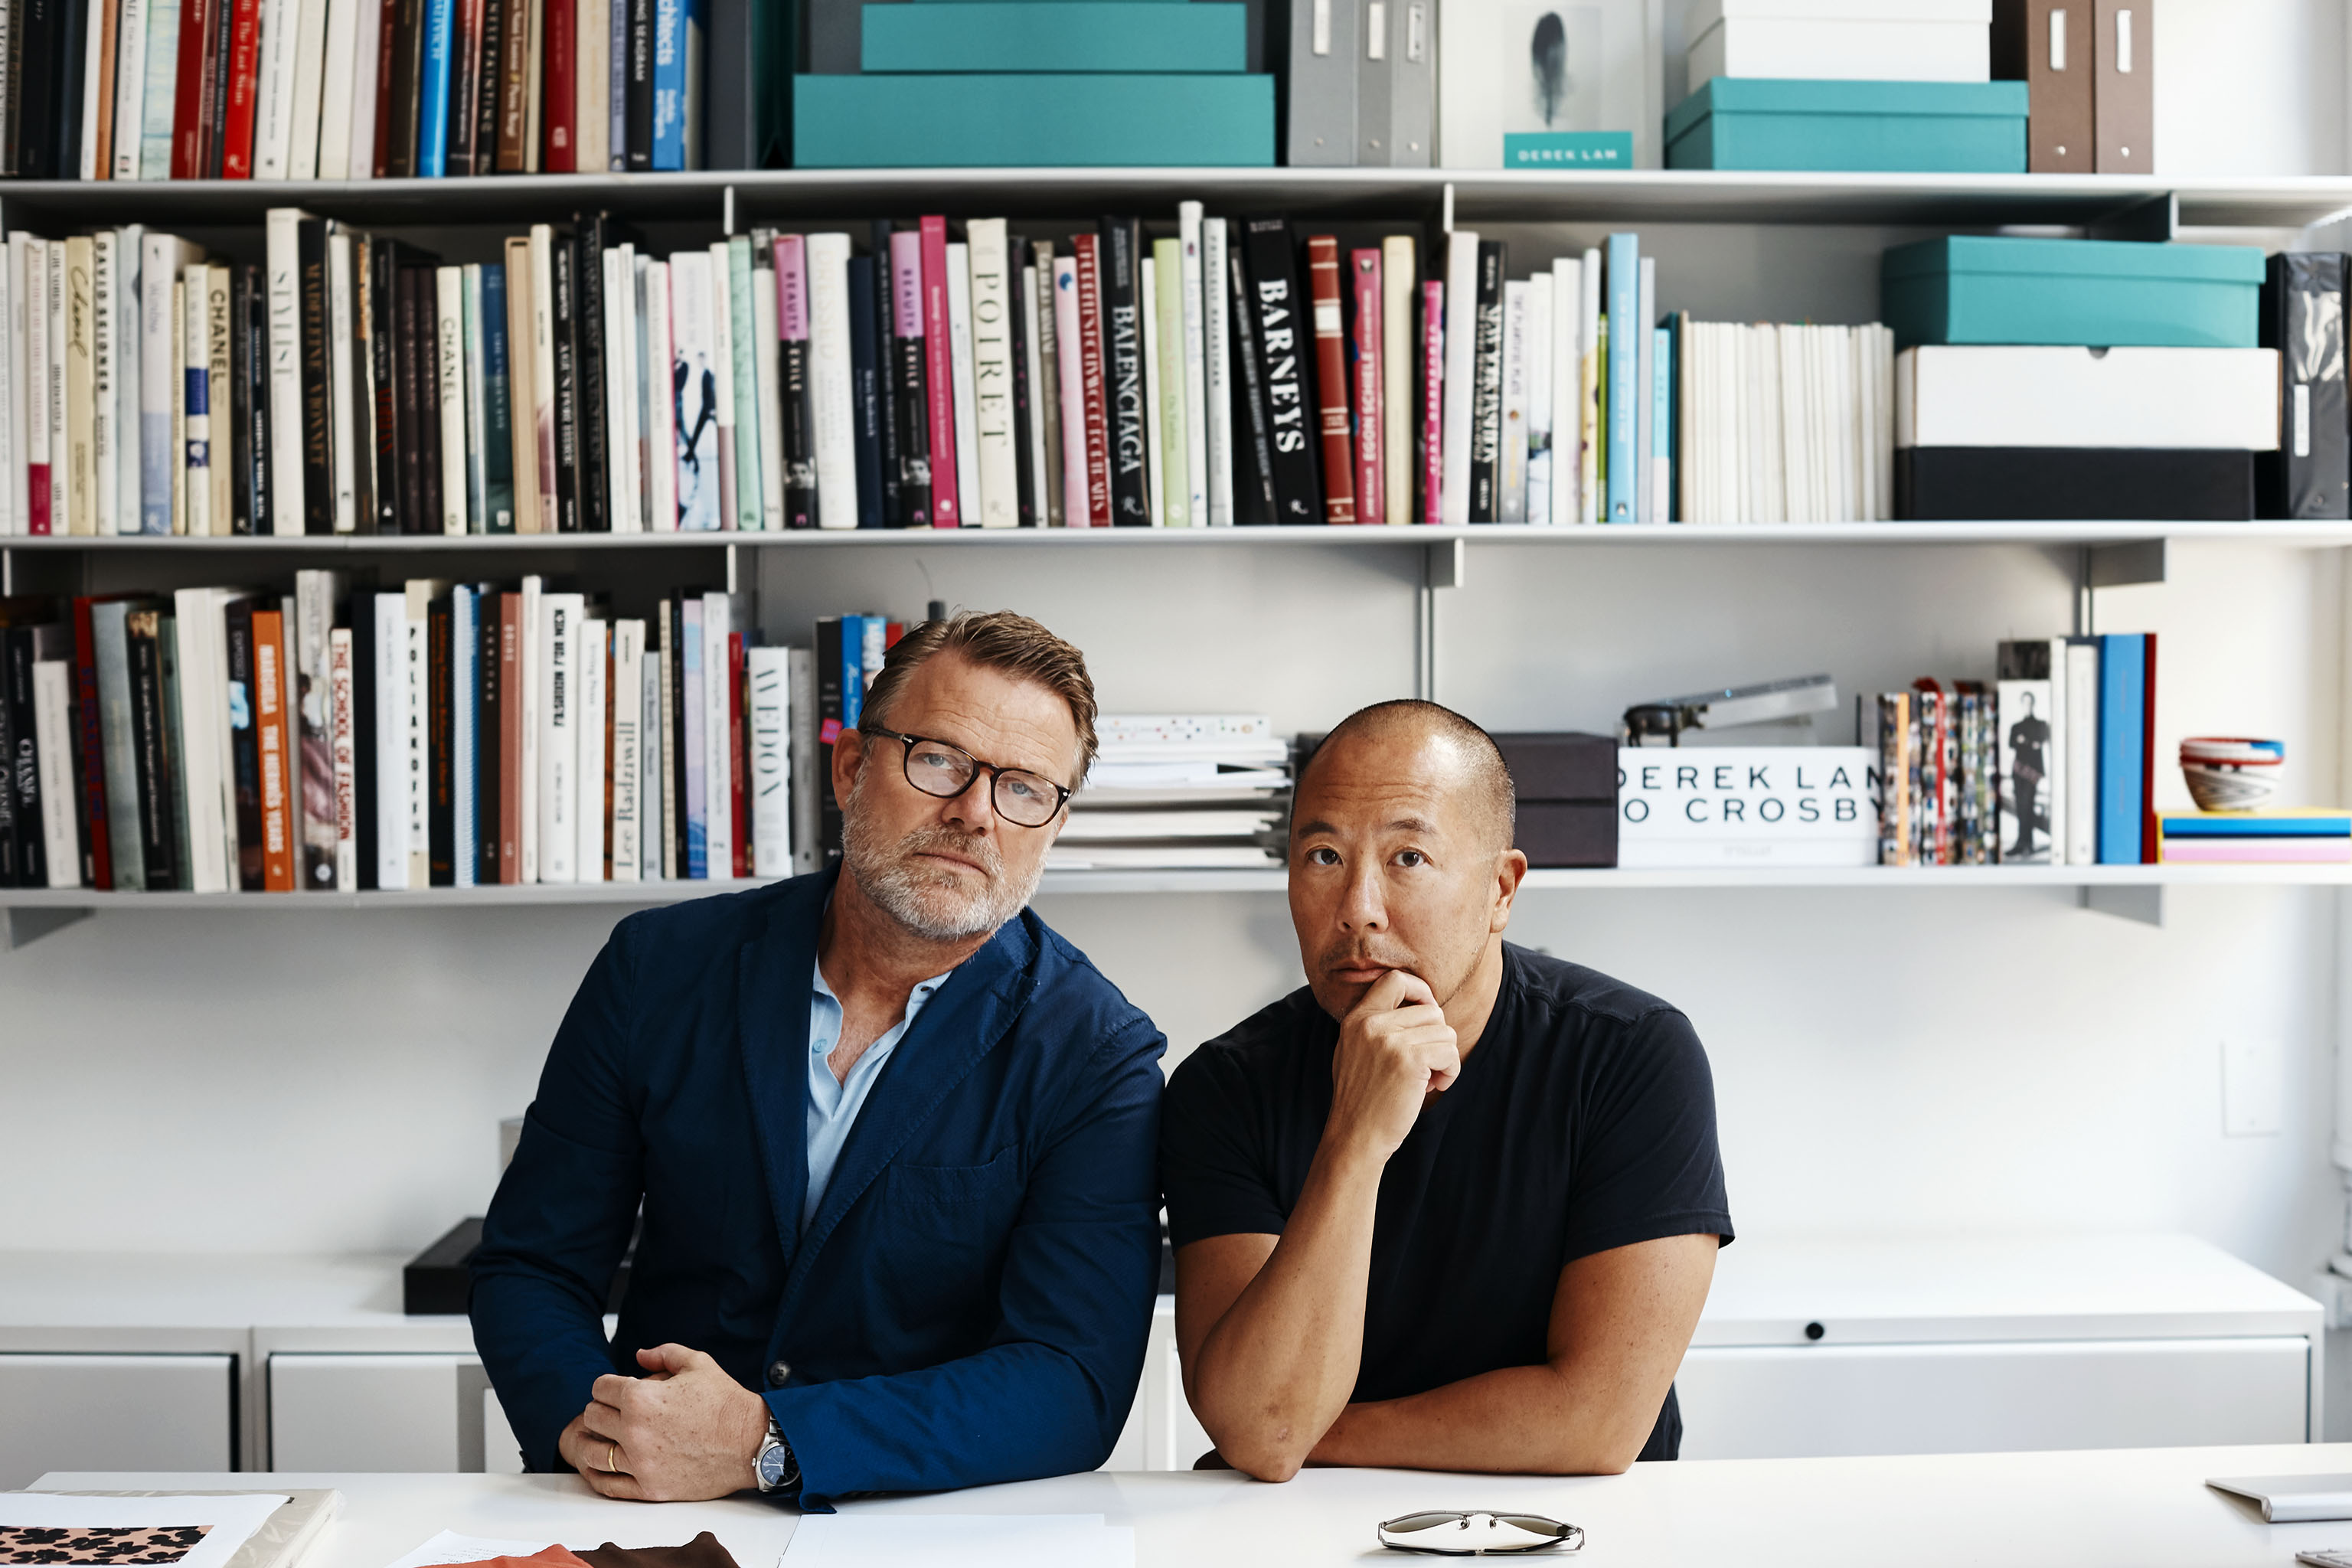 Derek Lam and Jan Hendrik-Schlottmann